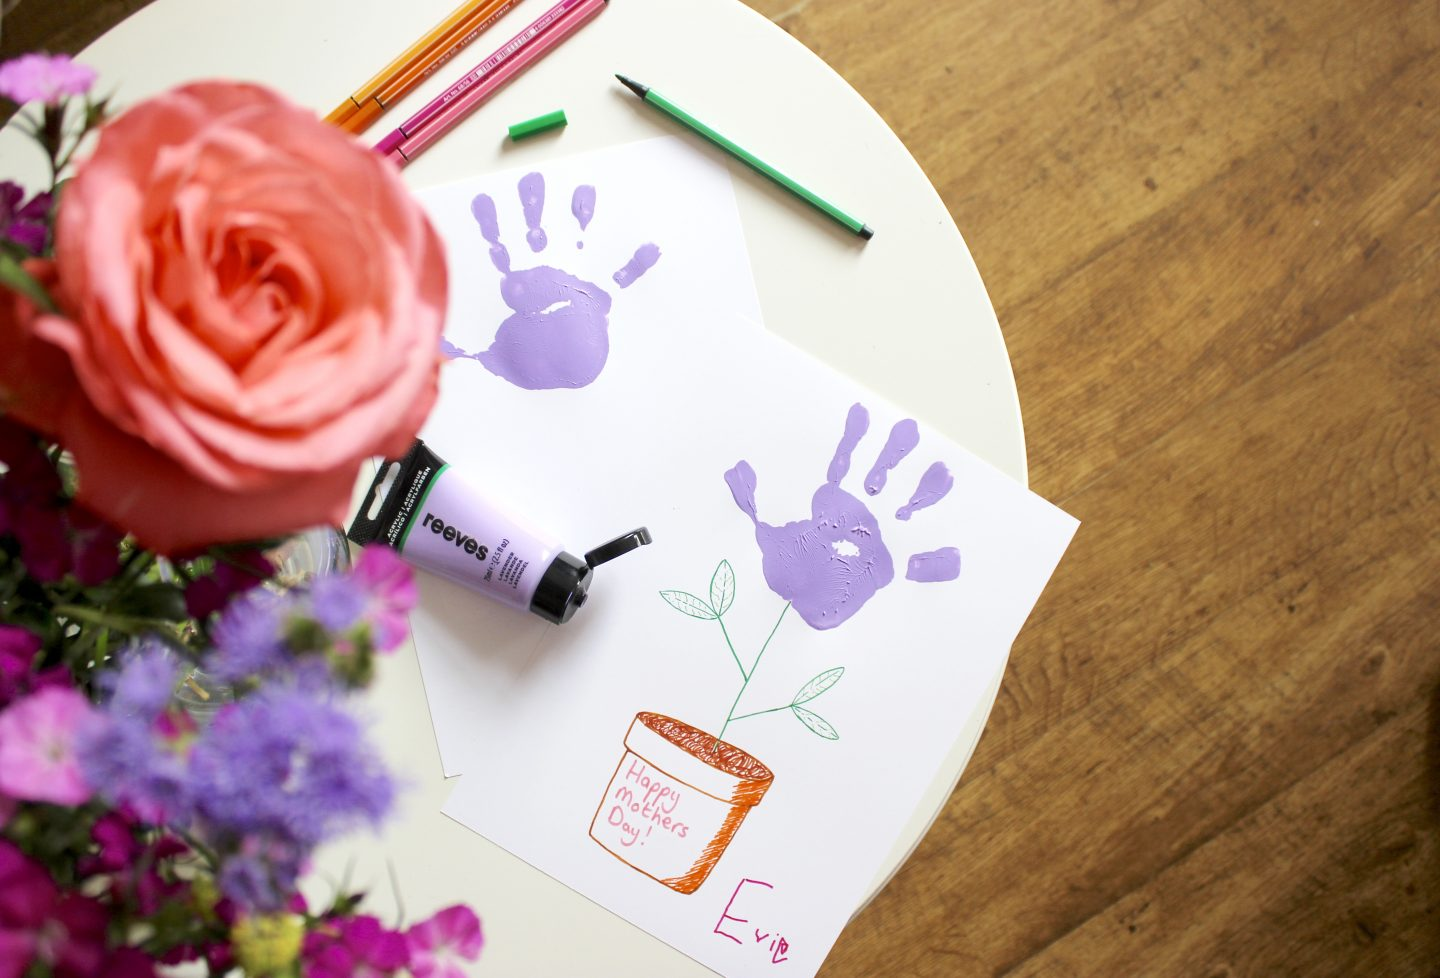 THREE EASY MOTHER'S DAY CRAFTS FOR KIDS